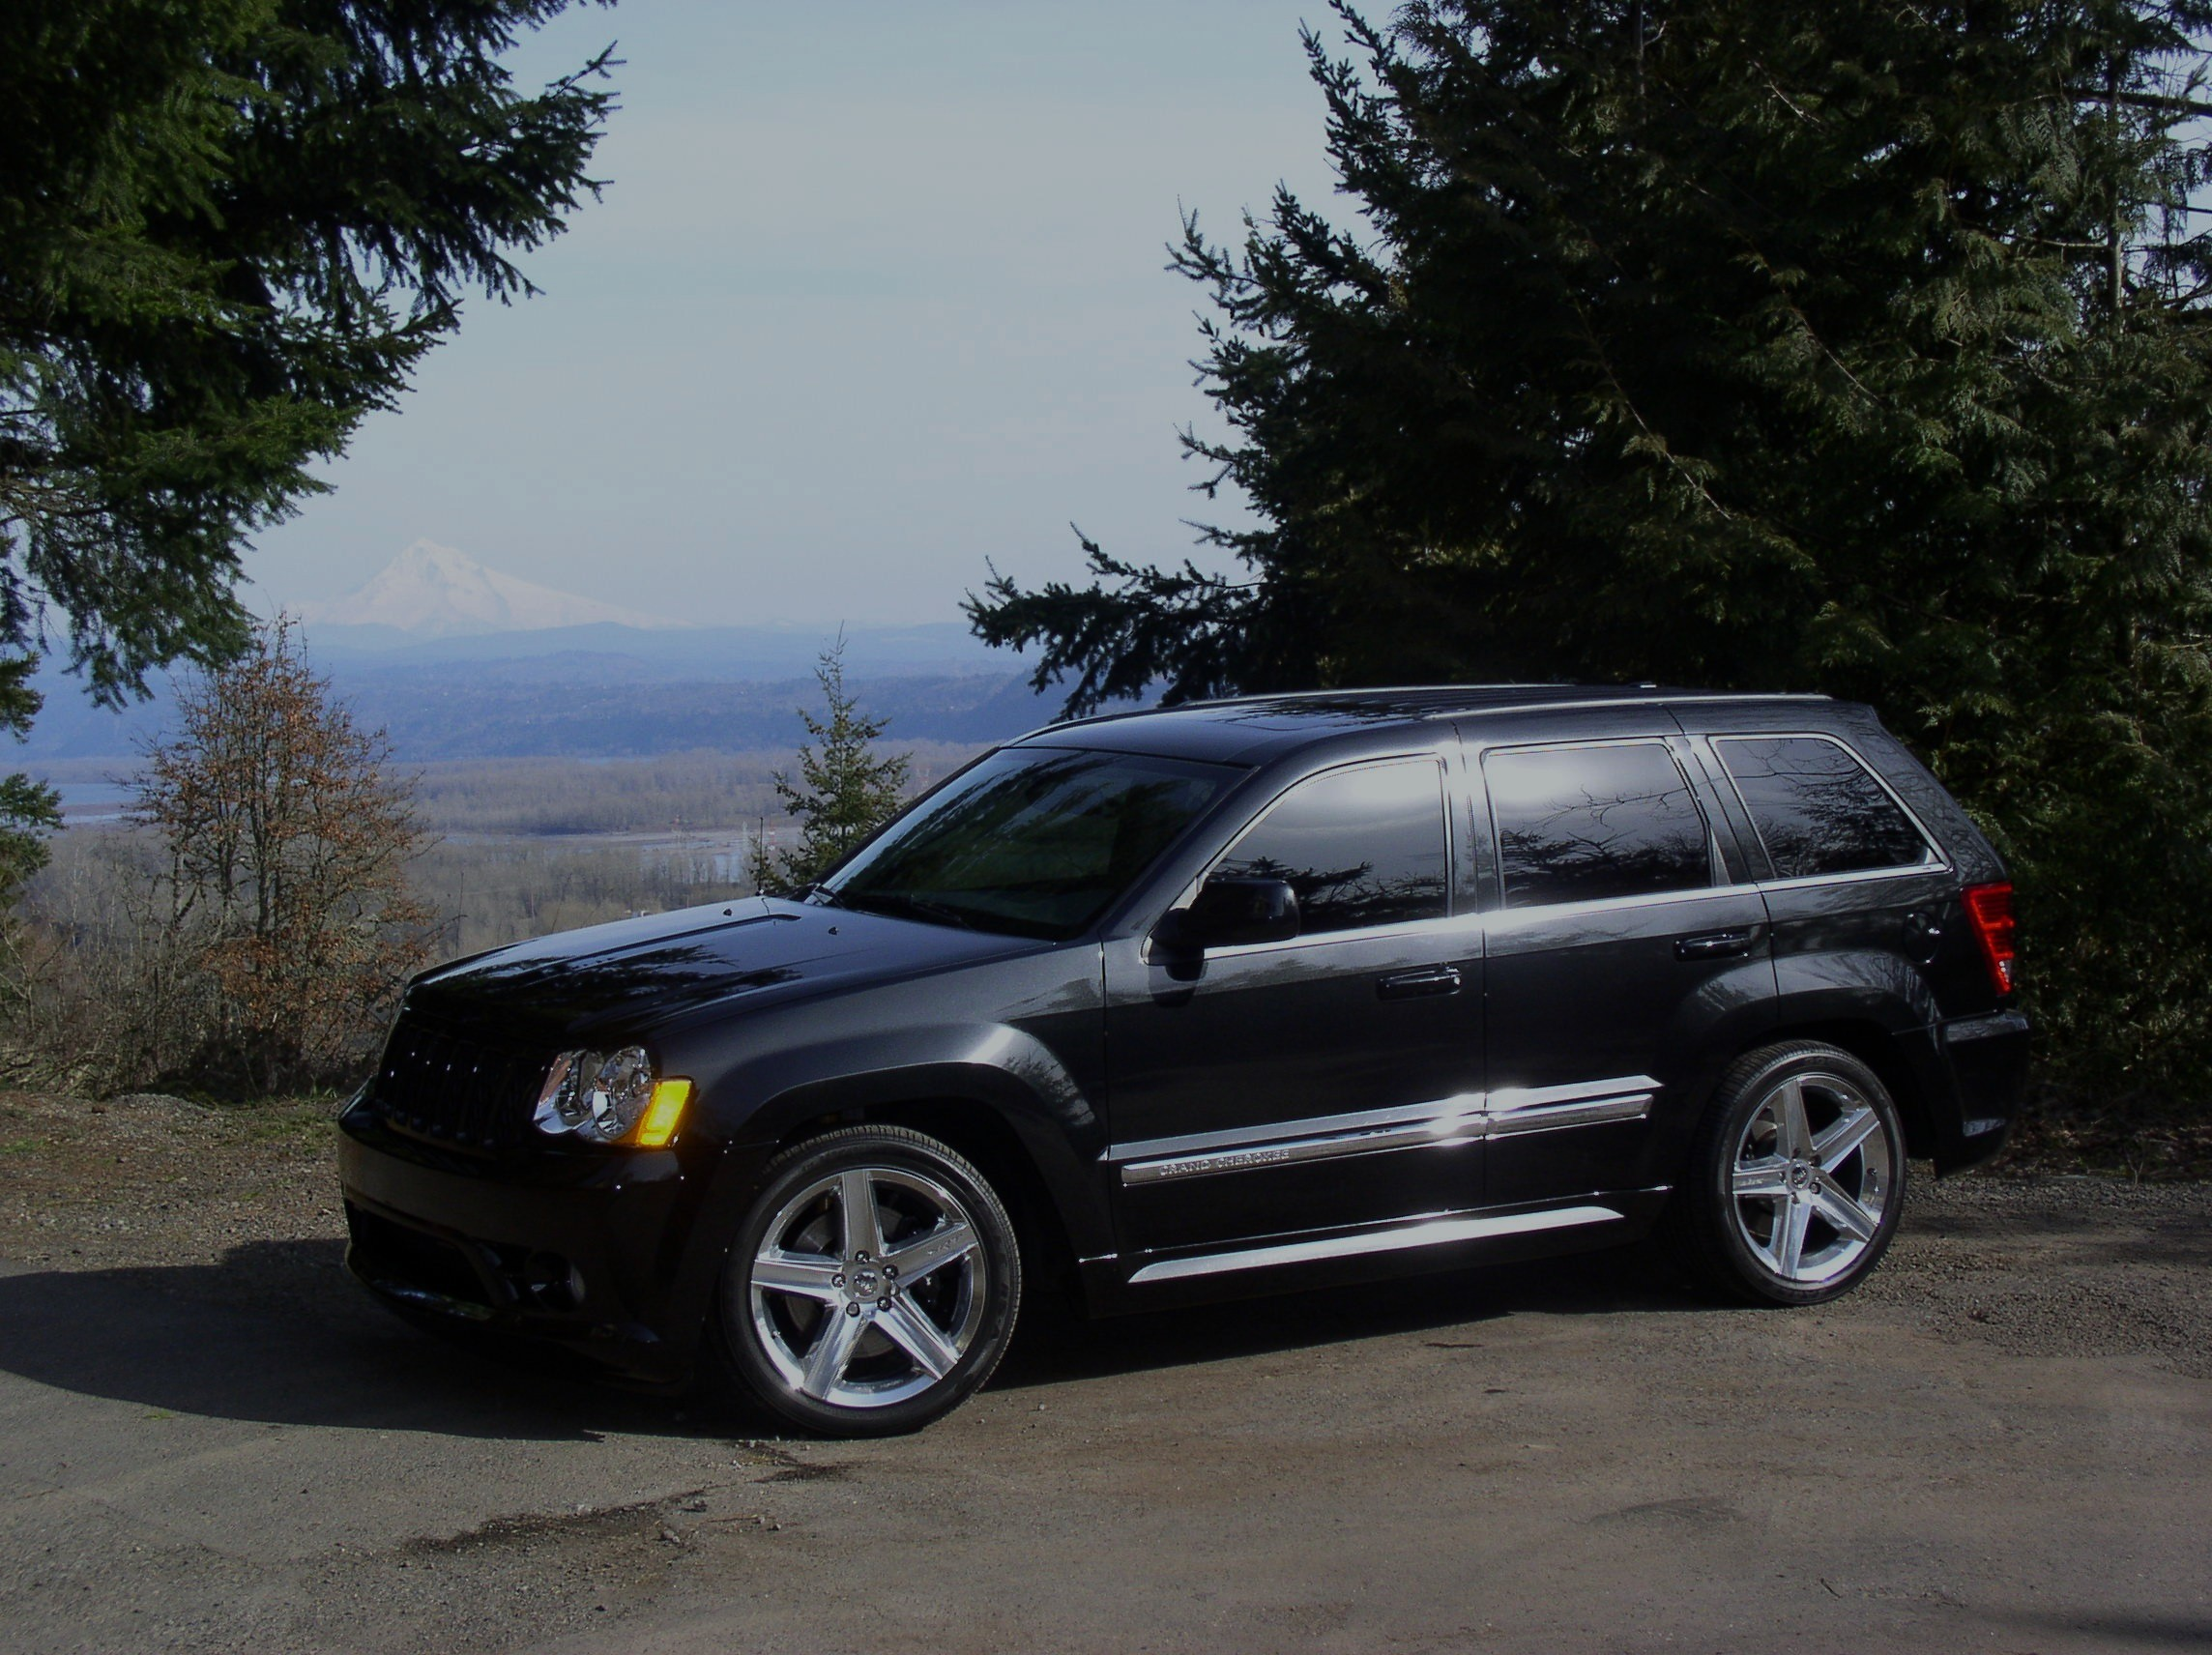 mandan007's 2008 Jeep Grand Cherokee